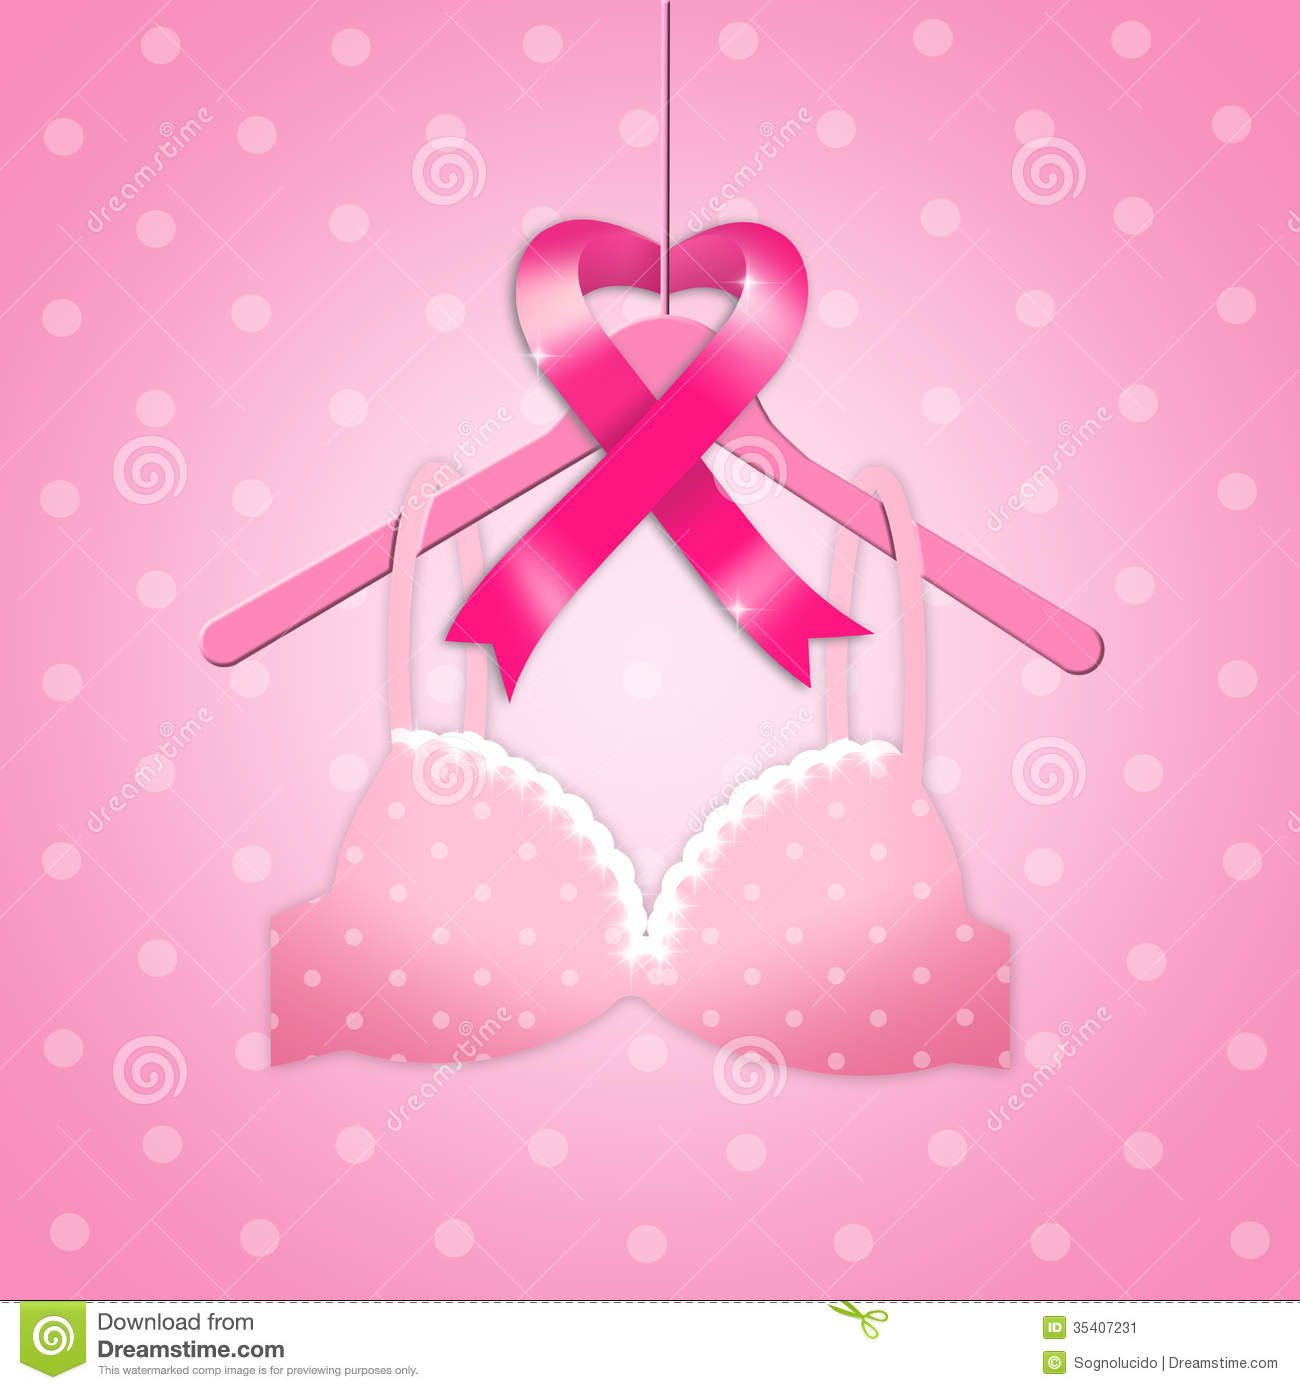 Breast Cancer Prevention Stock Image - Image: 35407231